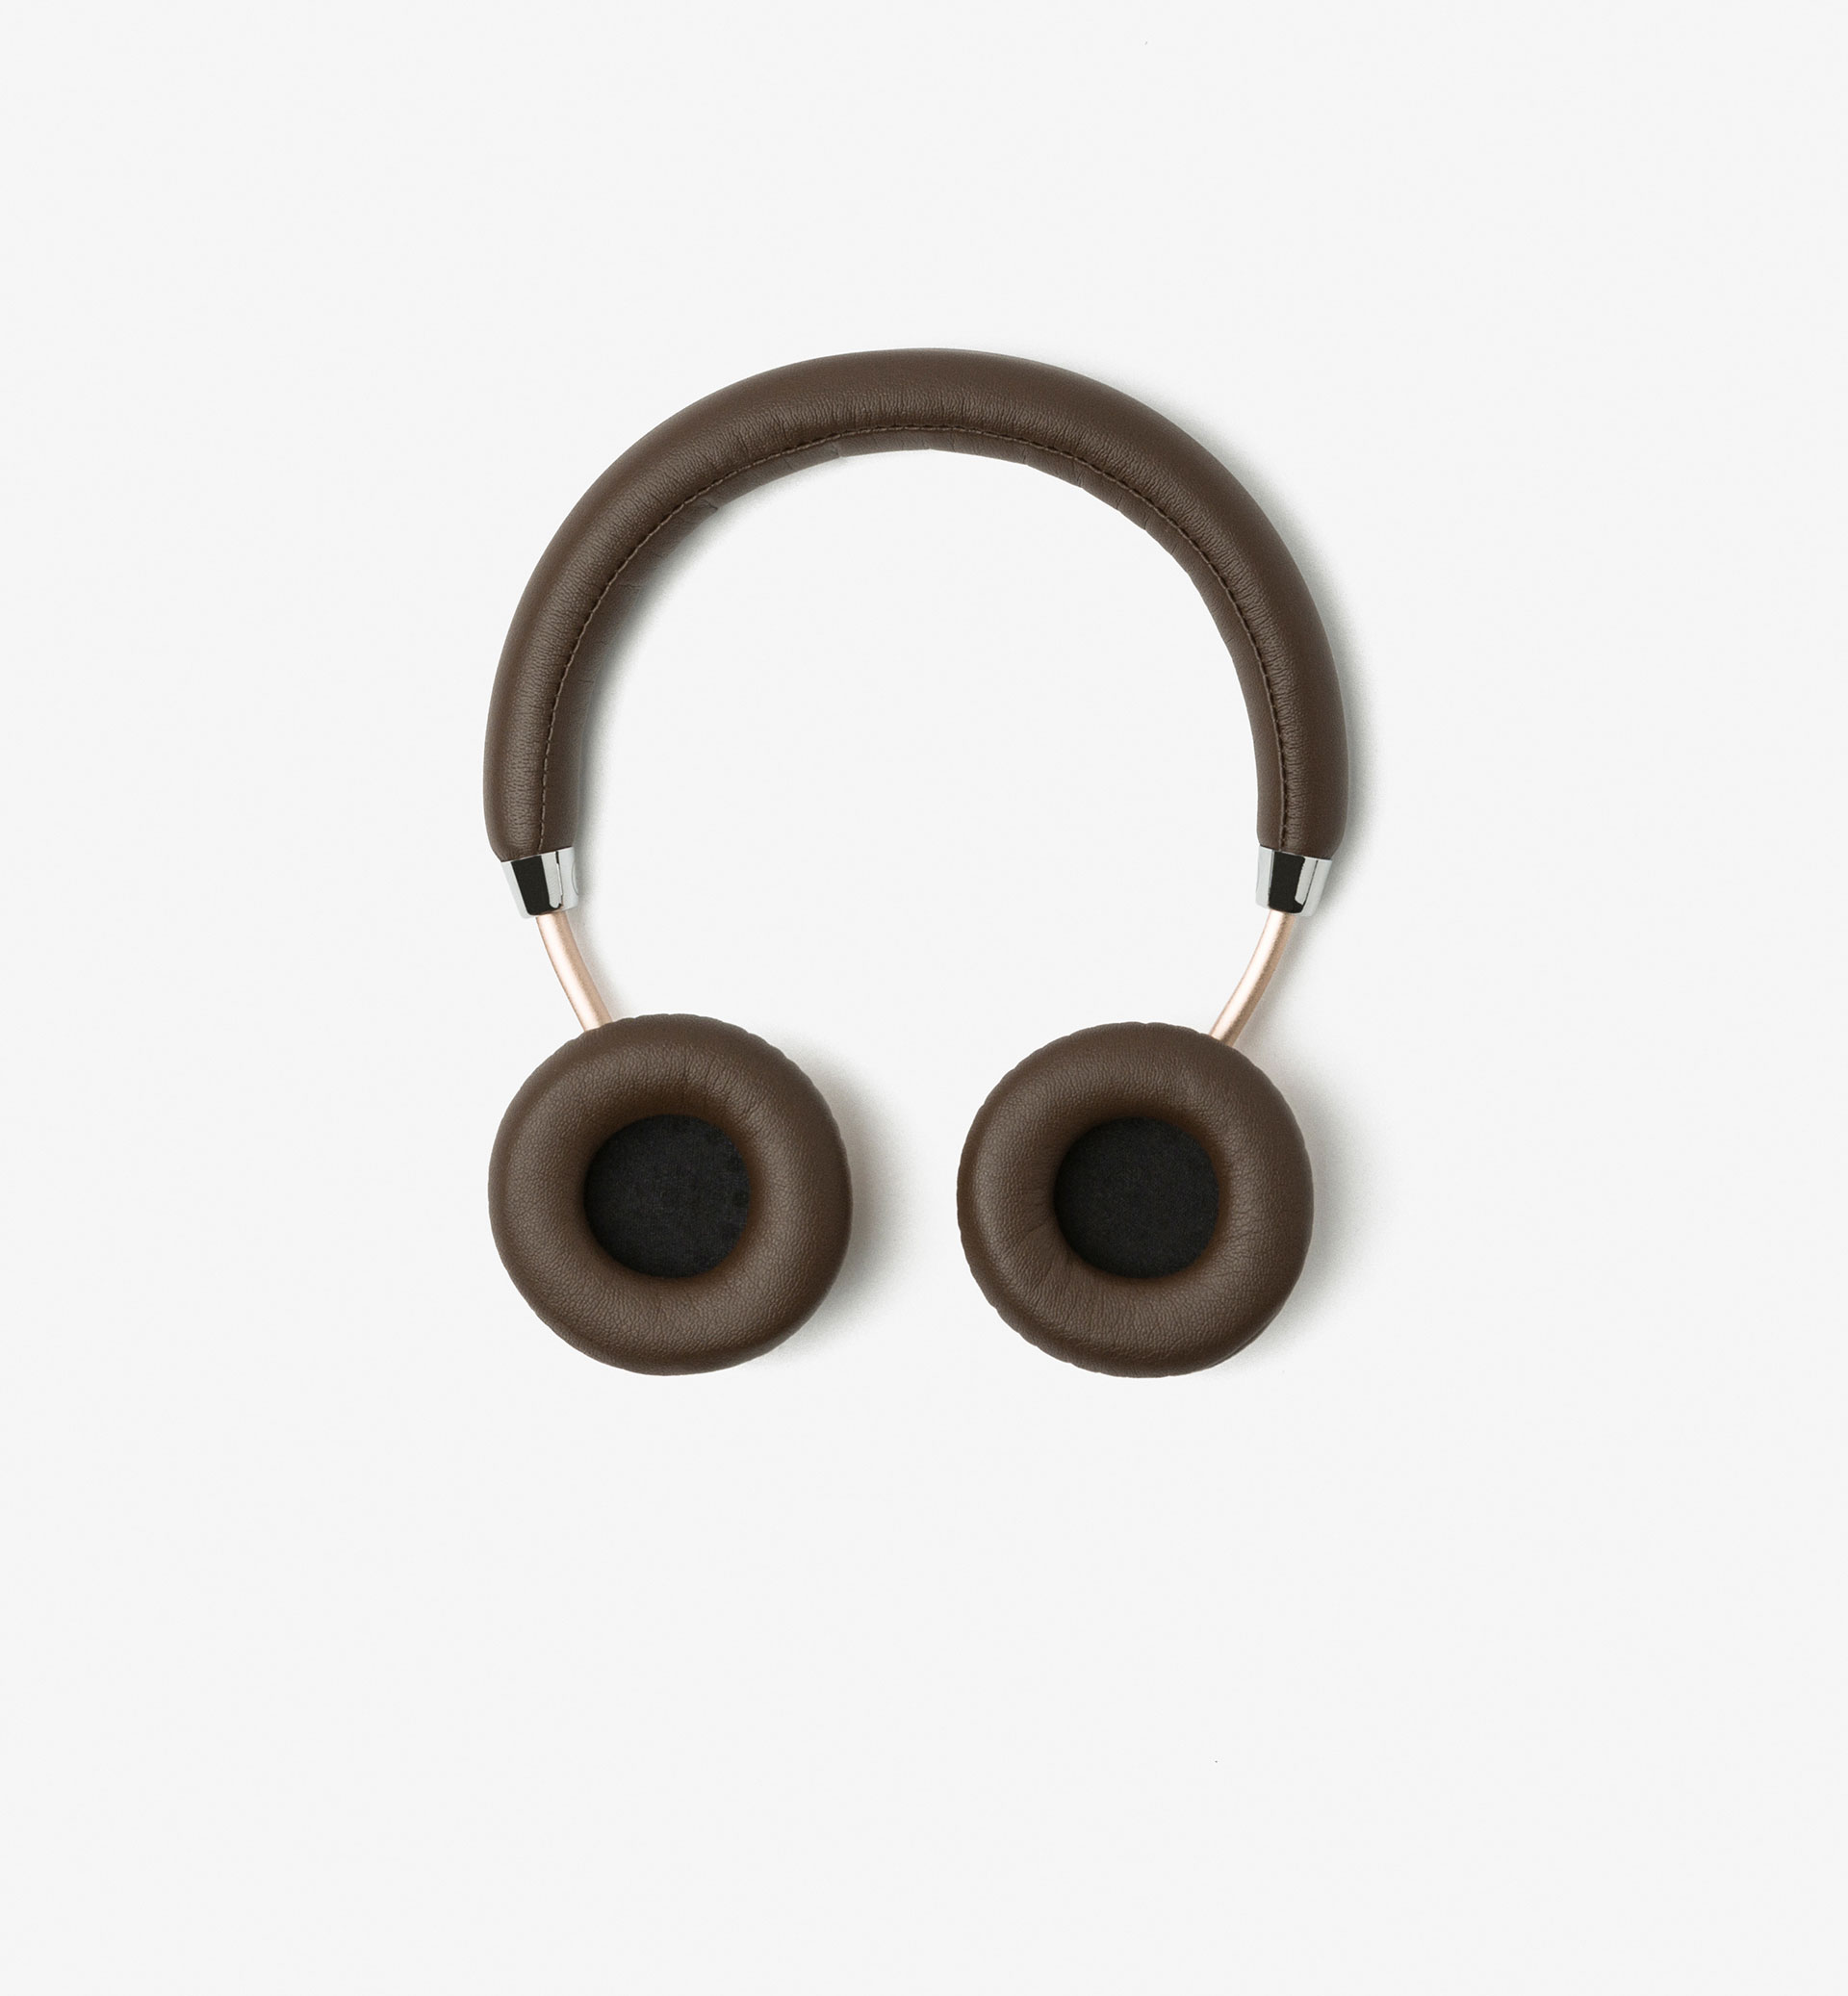 LEATHER HEADPHONES